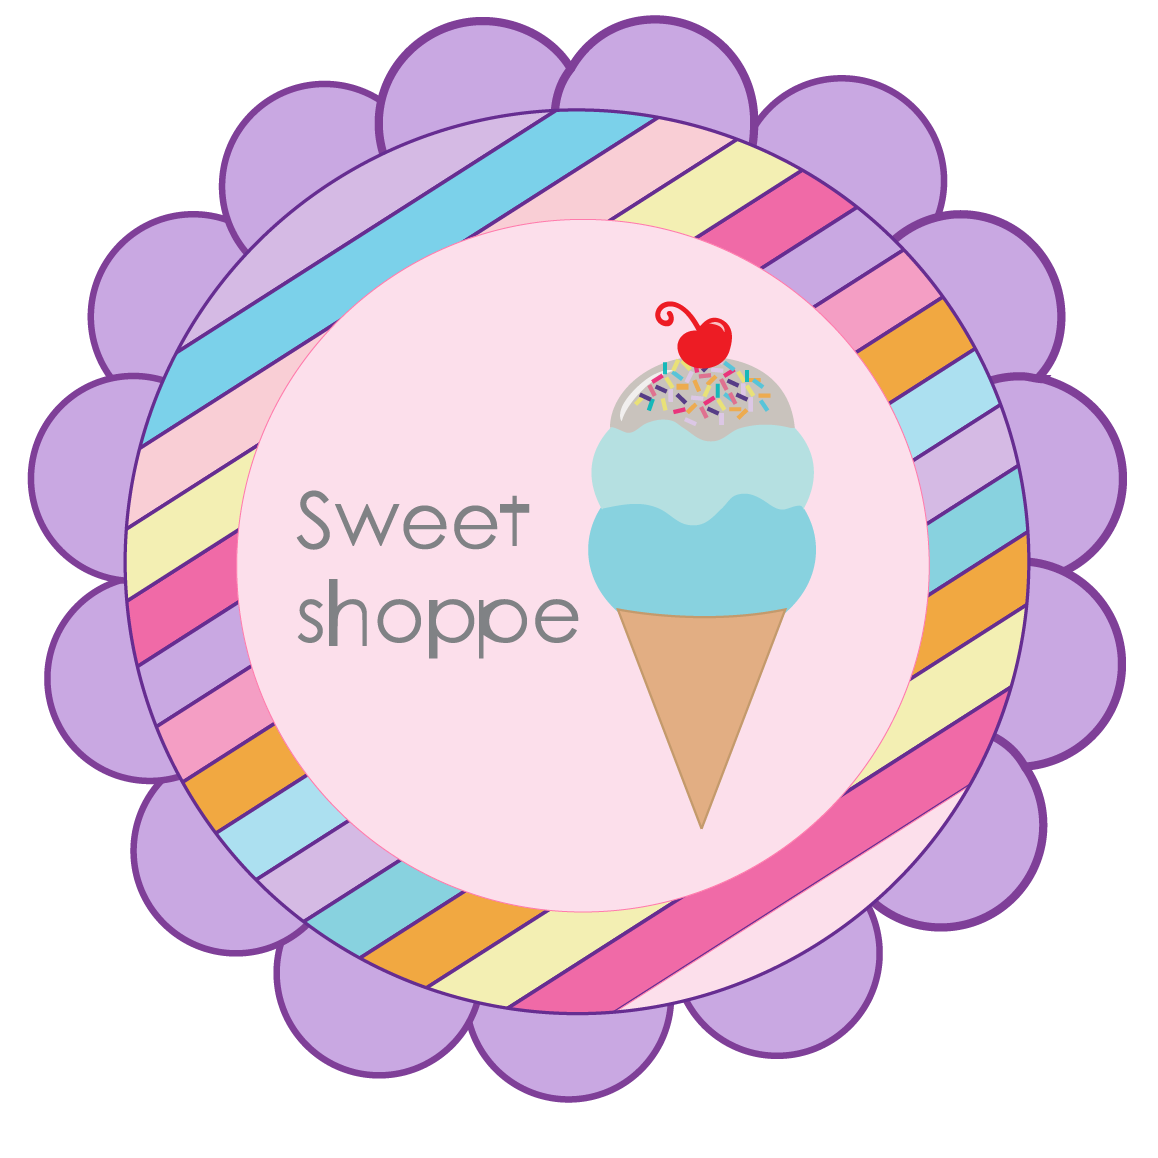 candy land clip art clipart best candyland pinterest candy rh pinterest co uk candyland clipart free candyland clip art letters